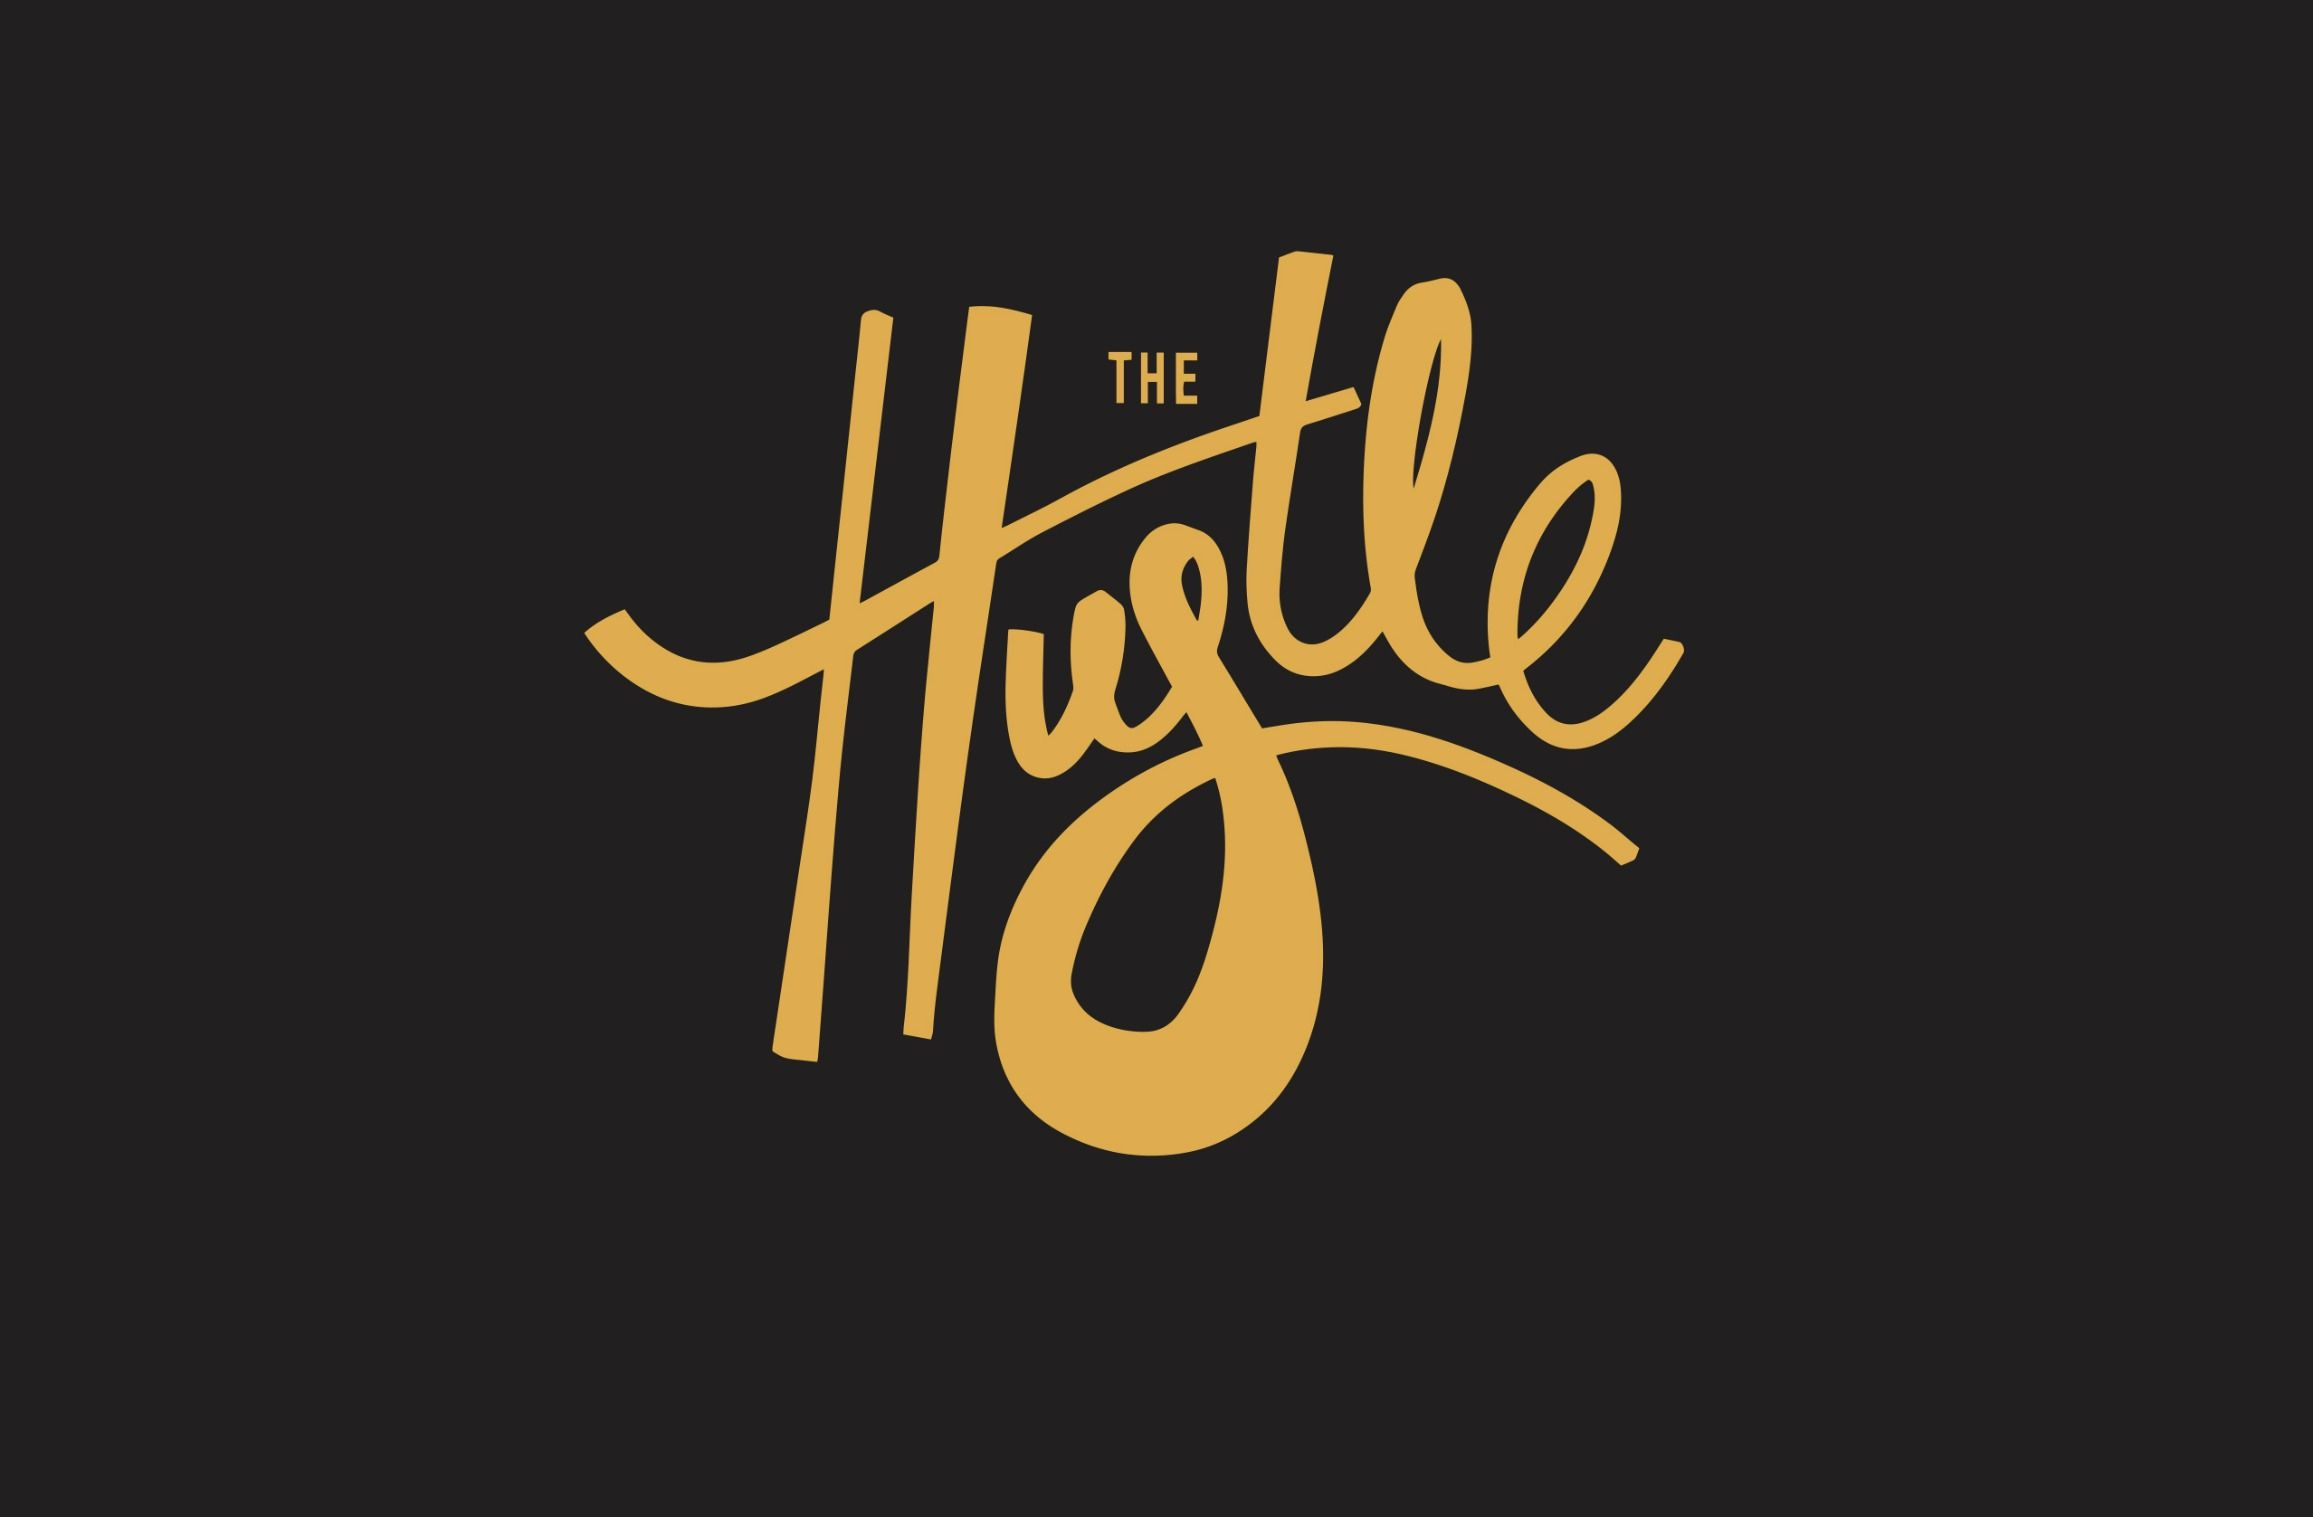 smashhiphop.files.wordpress.com 2015 05 the-hustle-logo.jpg